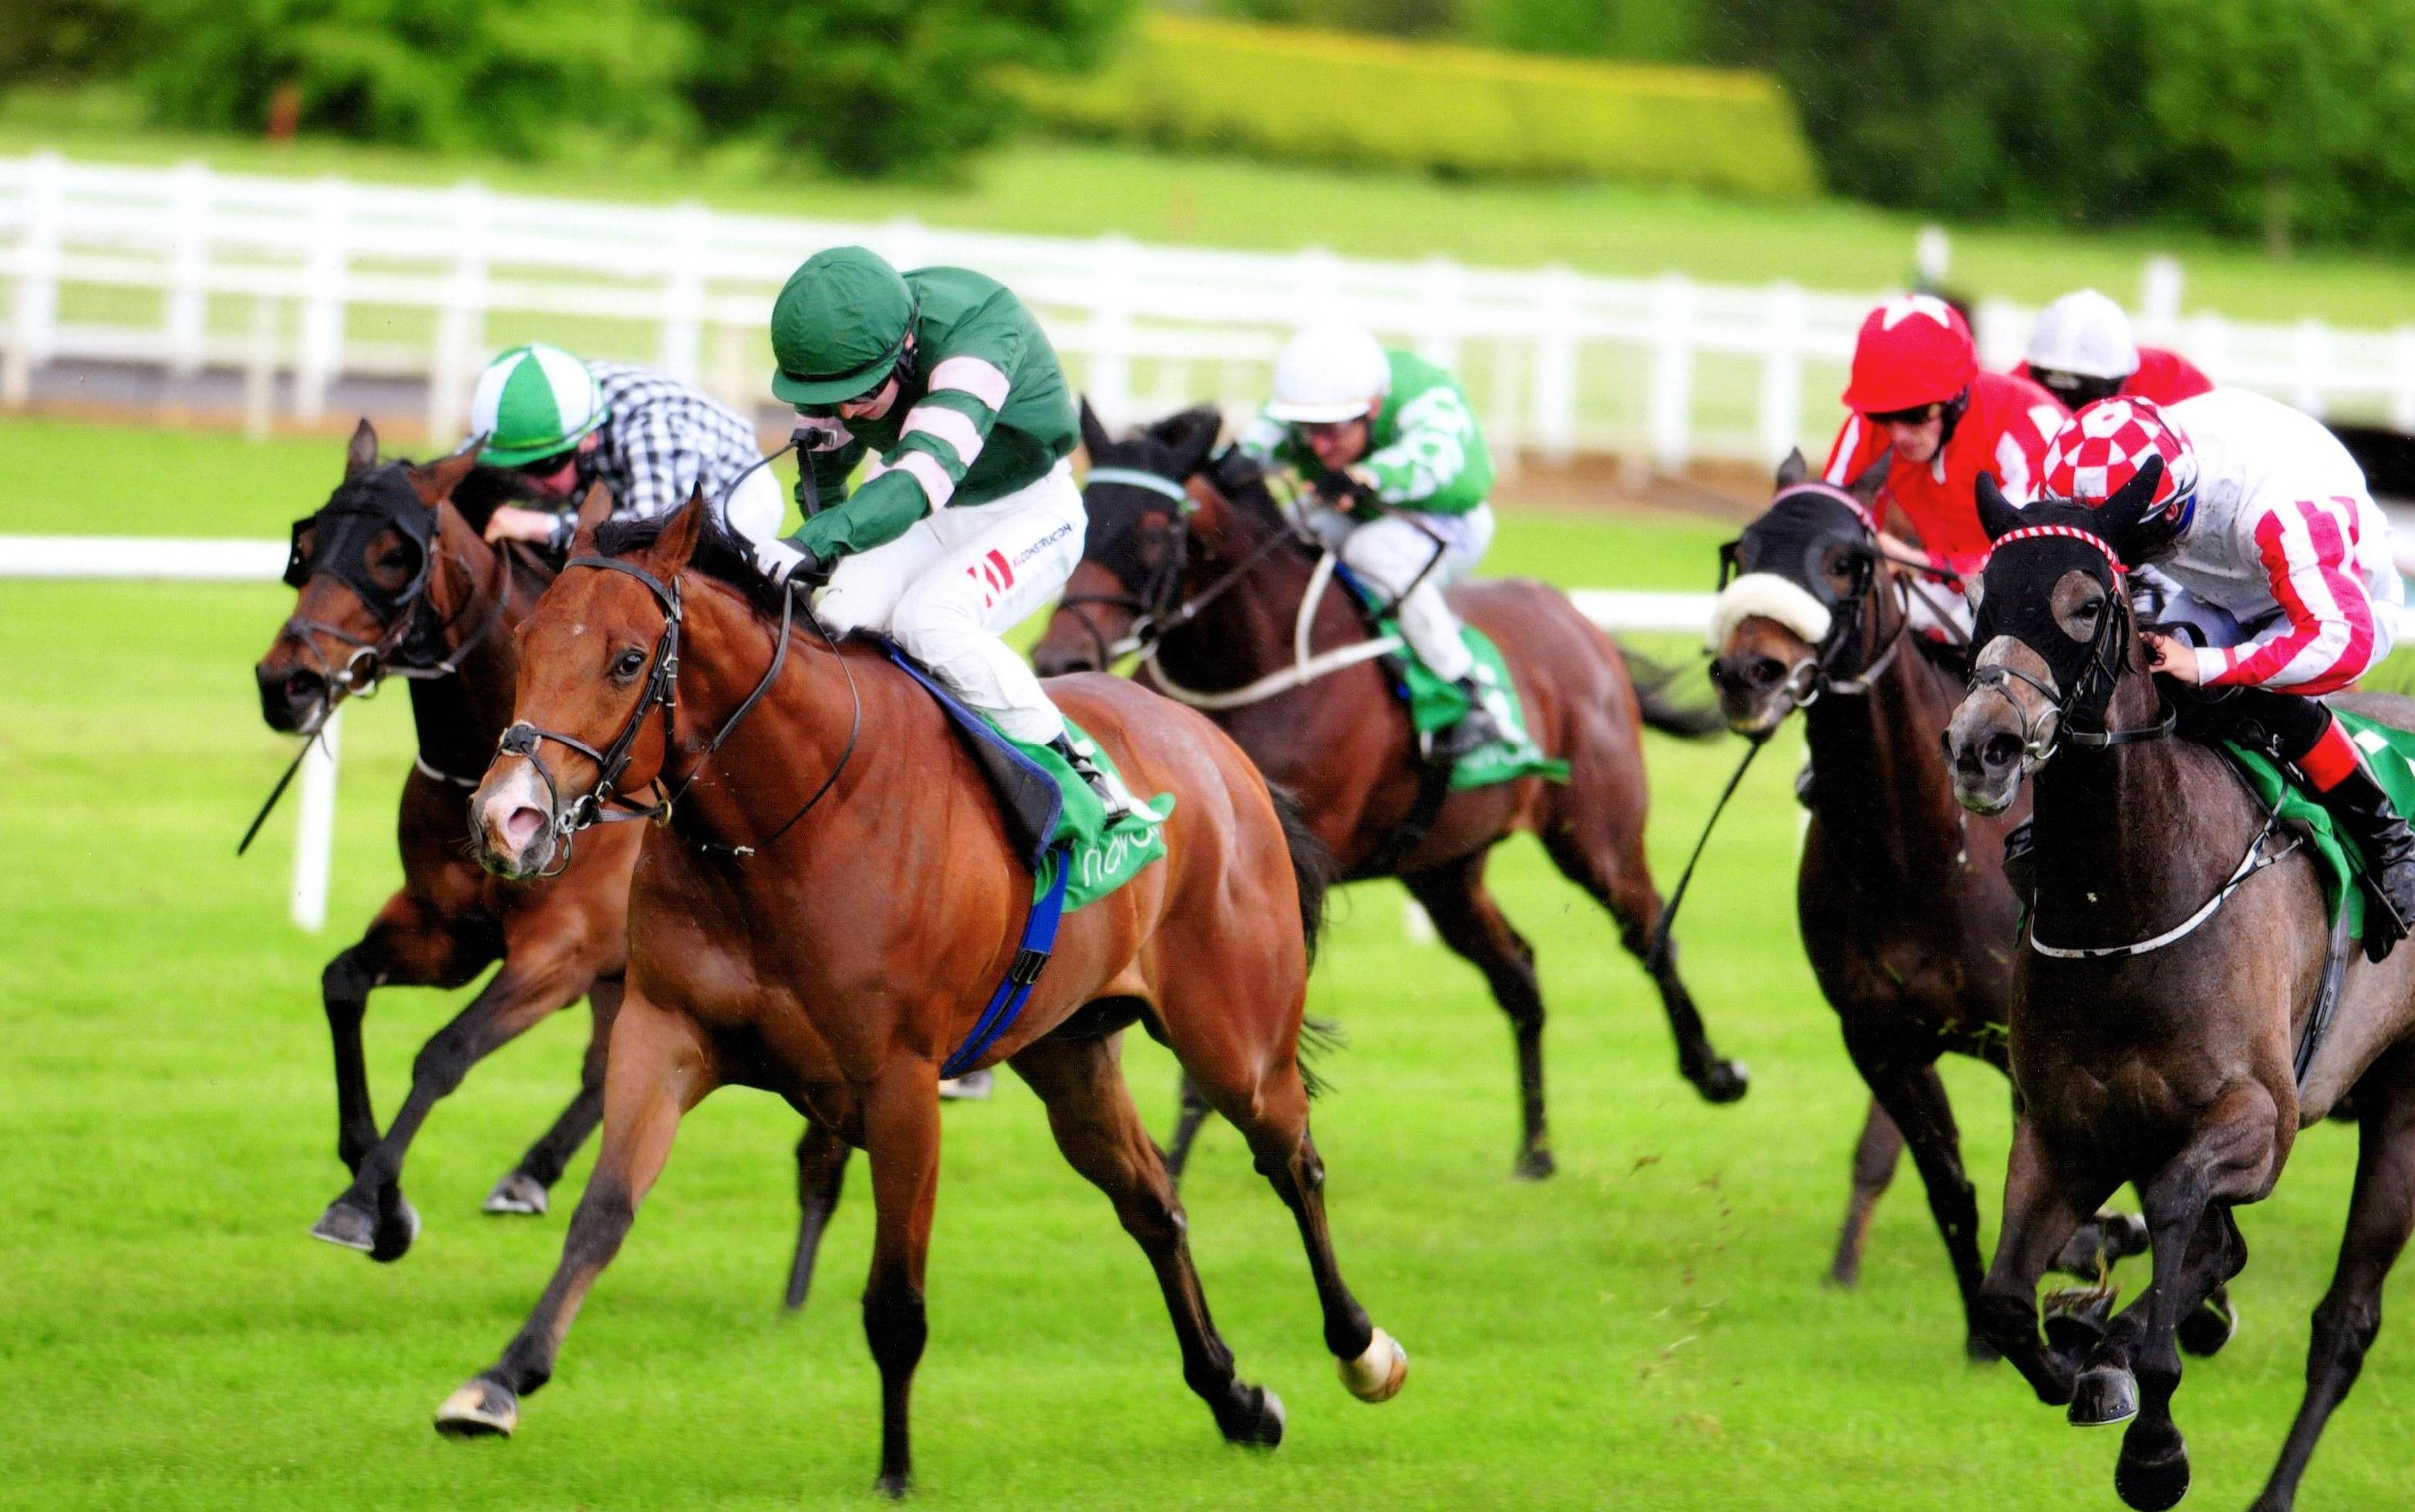 CELEBRATION wins first time for Gaelic Thoroughbreds at Navan 20th May 2017